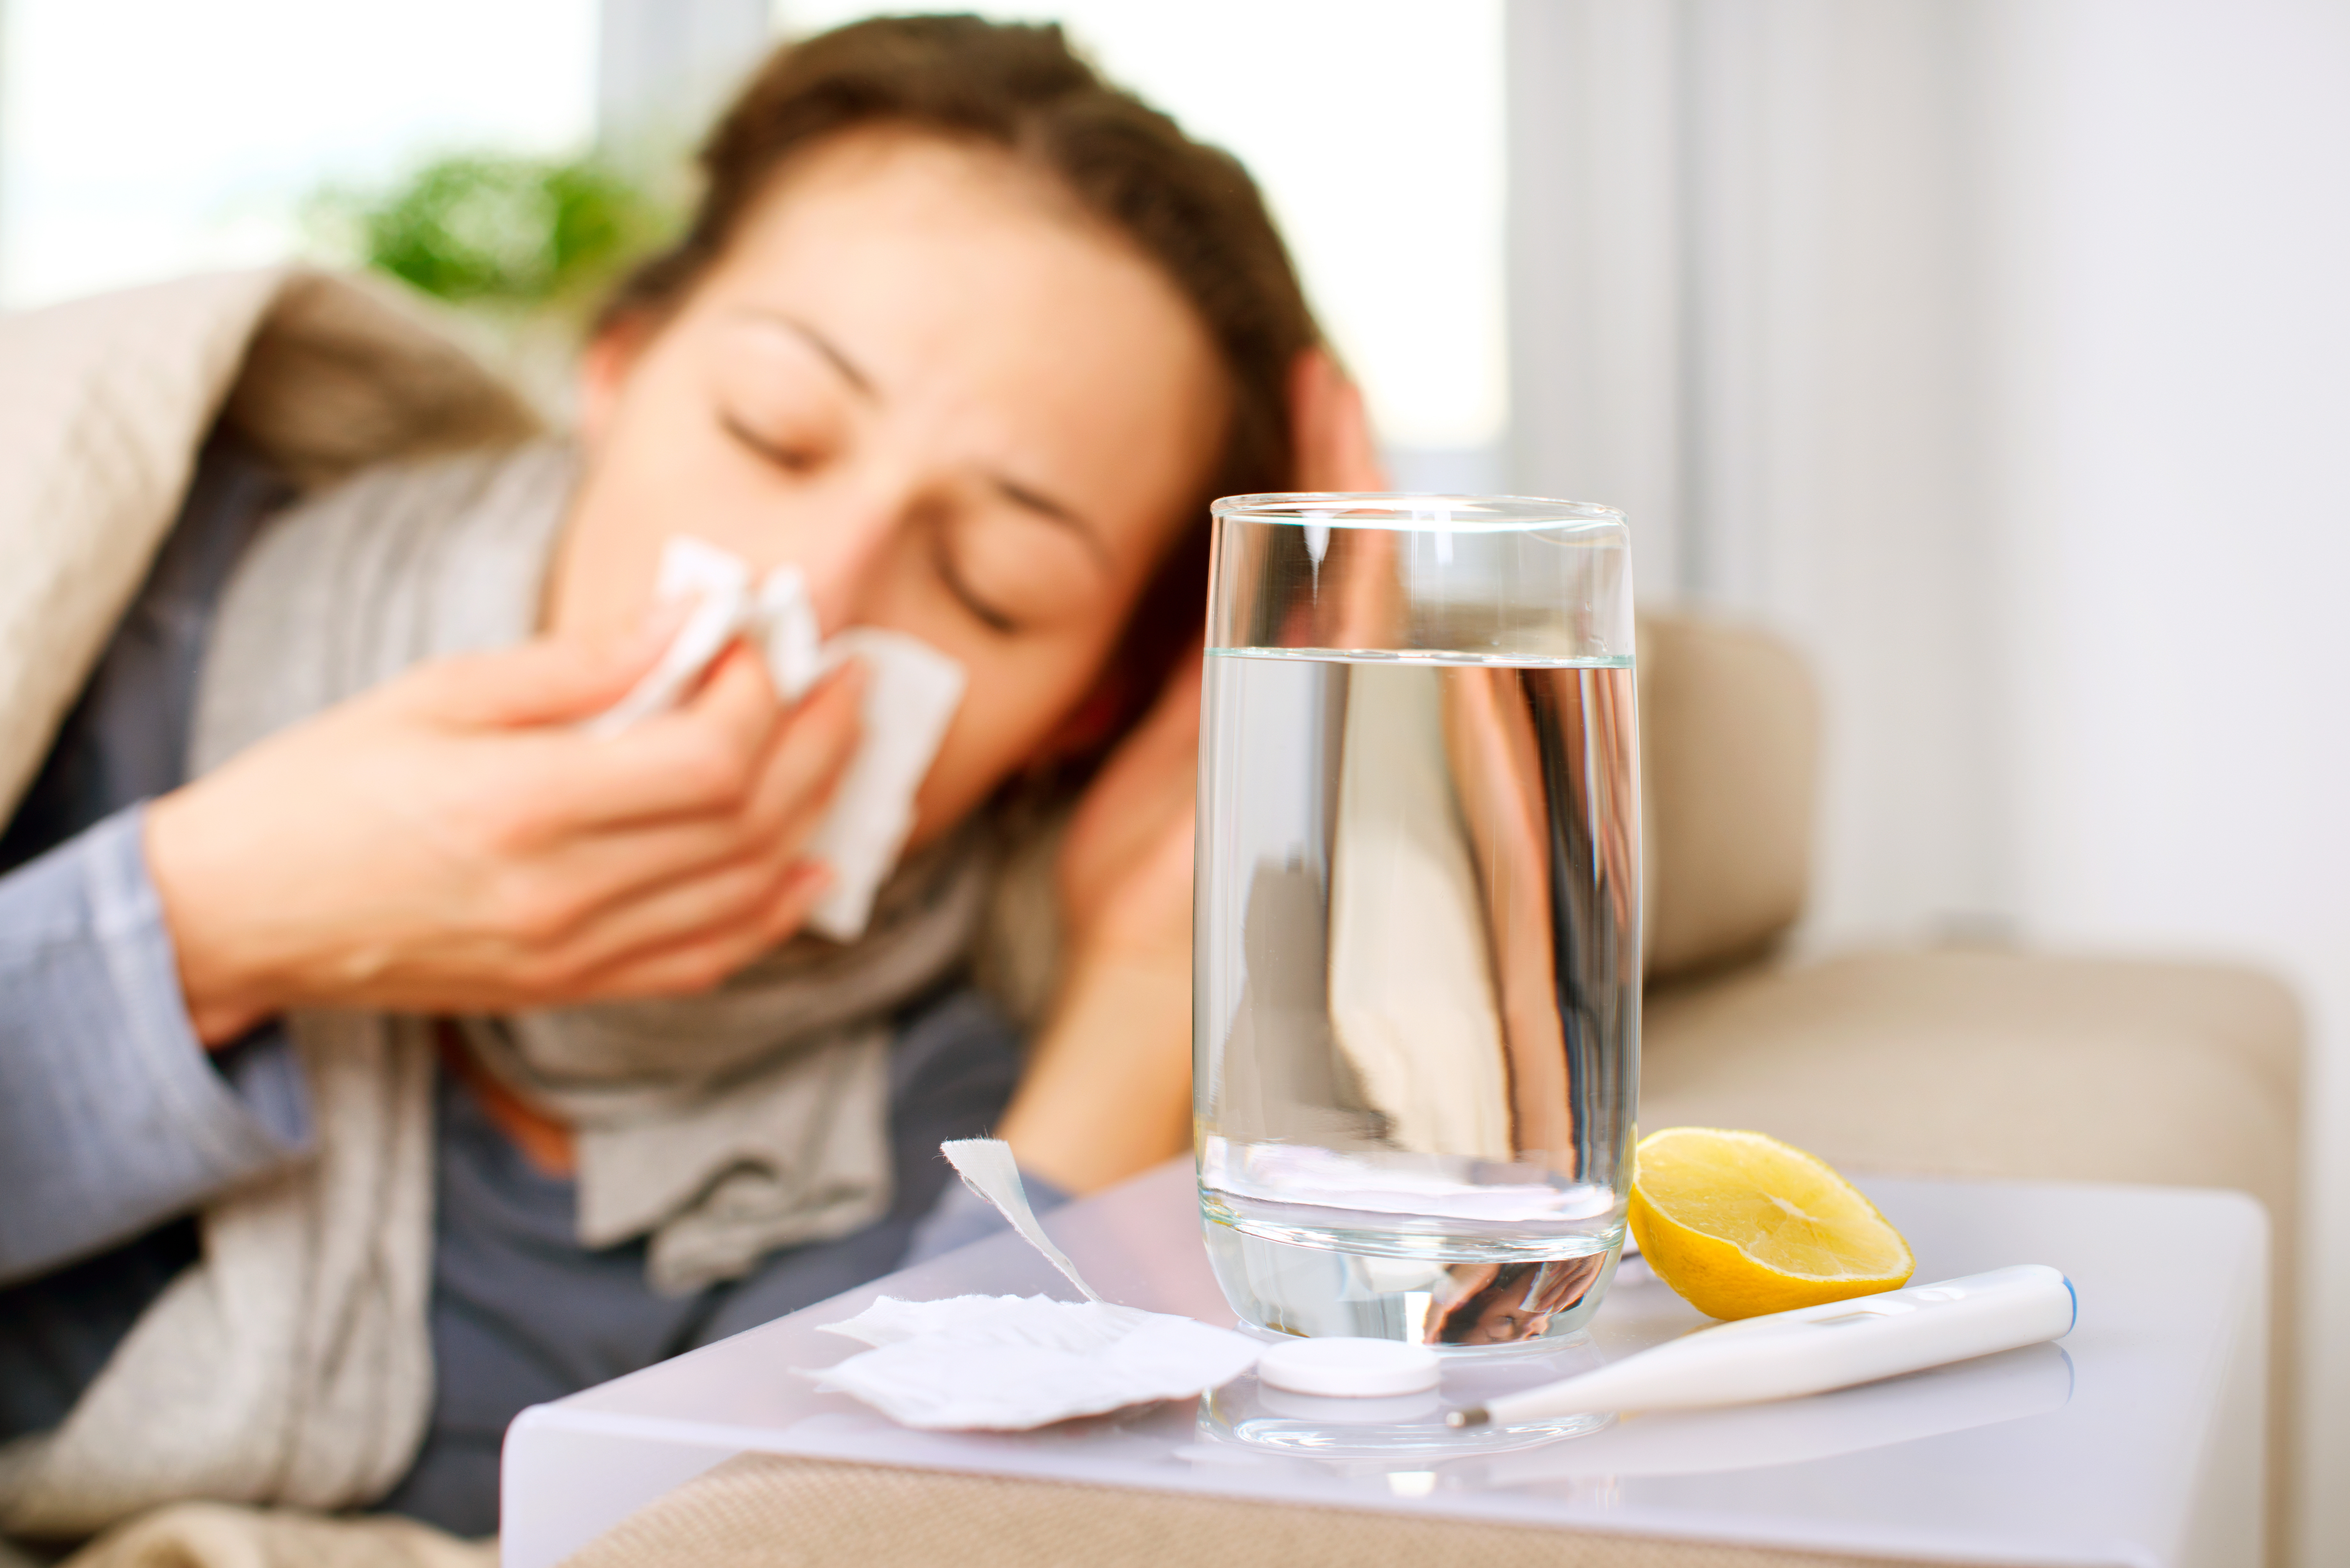 5 tips how to avoid colds